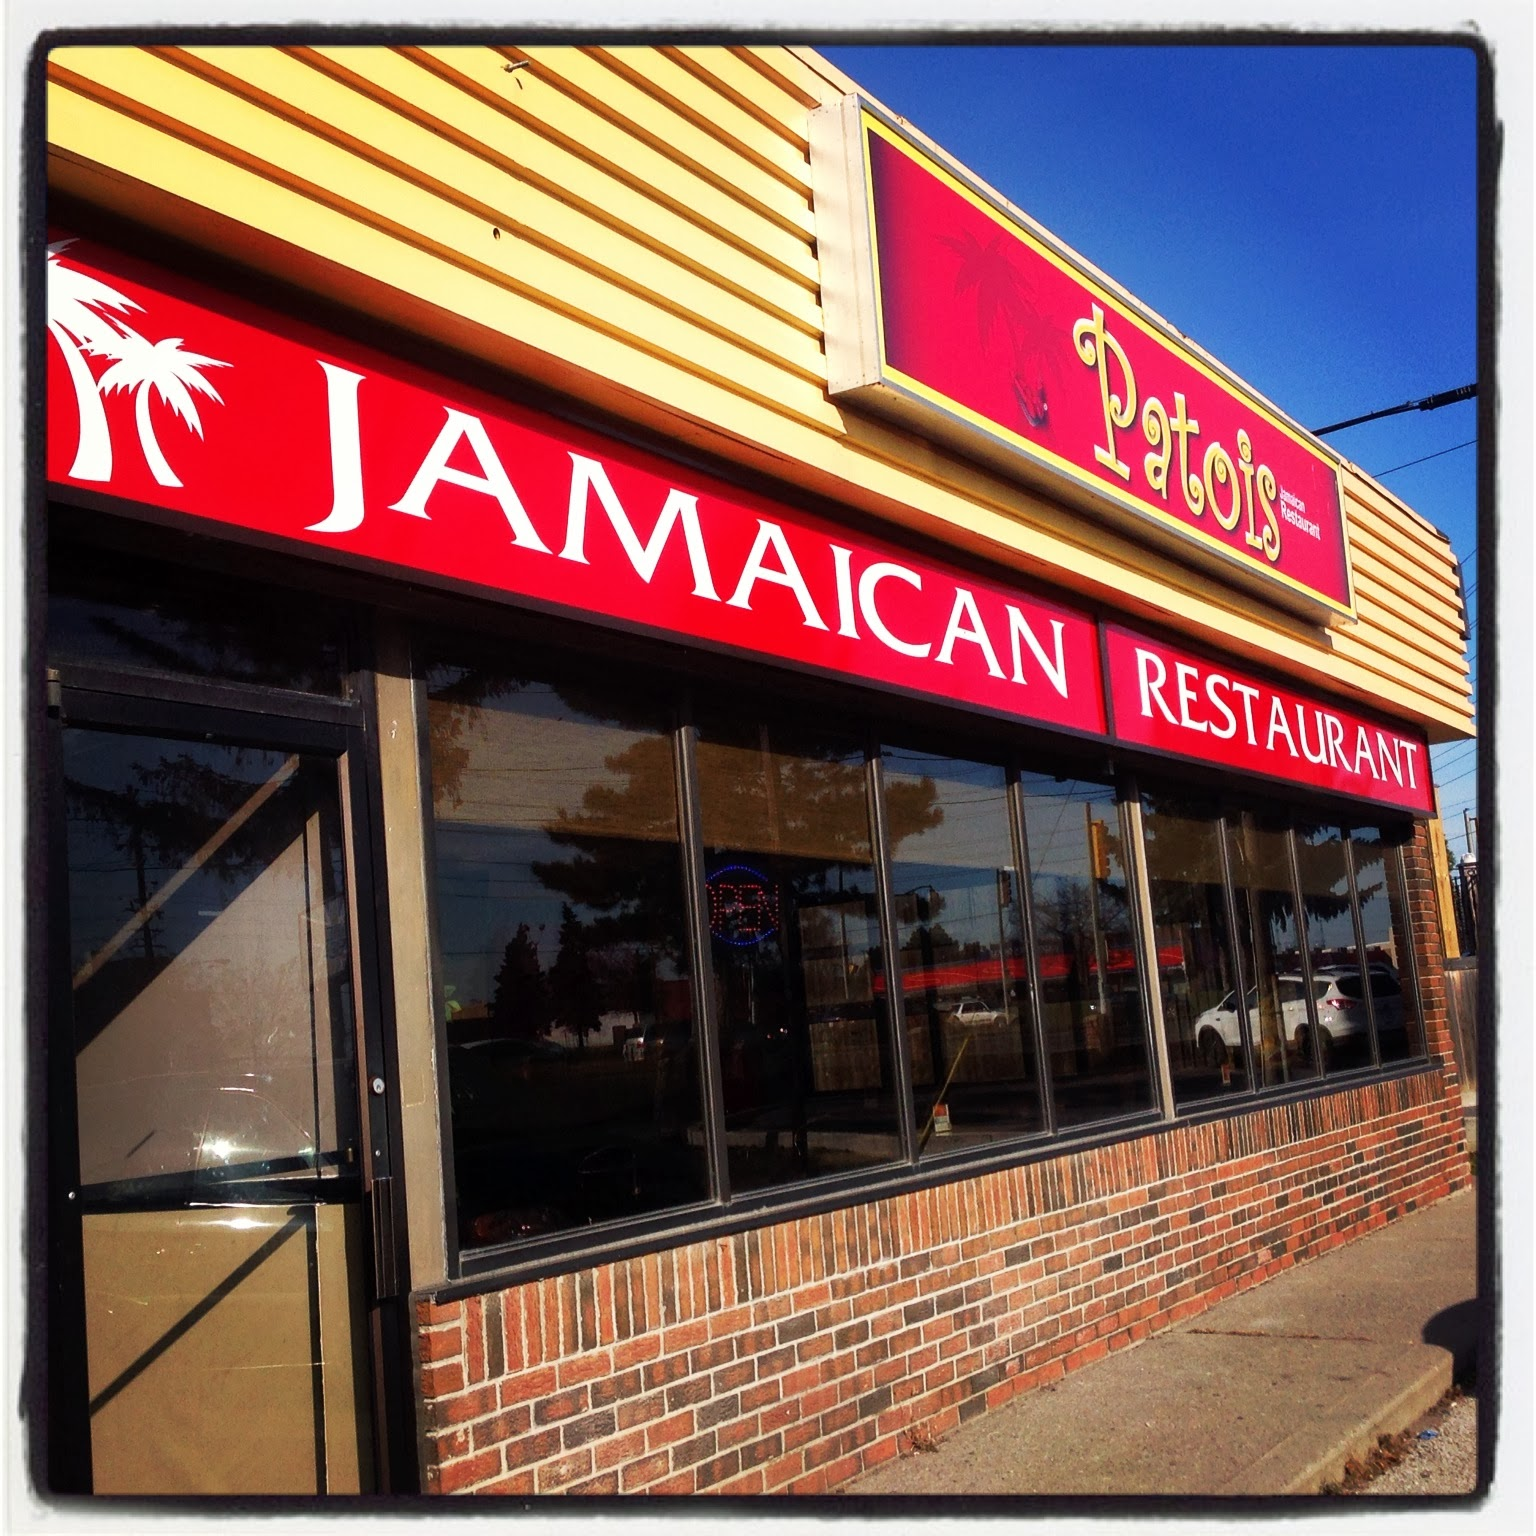 Restaunt: Starving Foodie: Restaurant Review: Patois Jamaican Restaurant